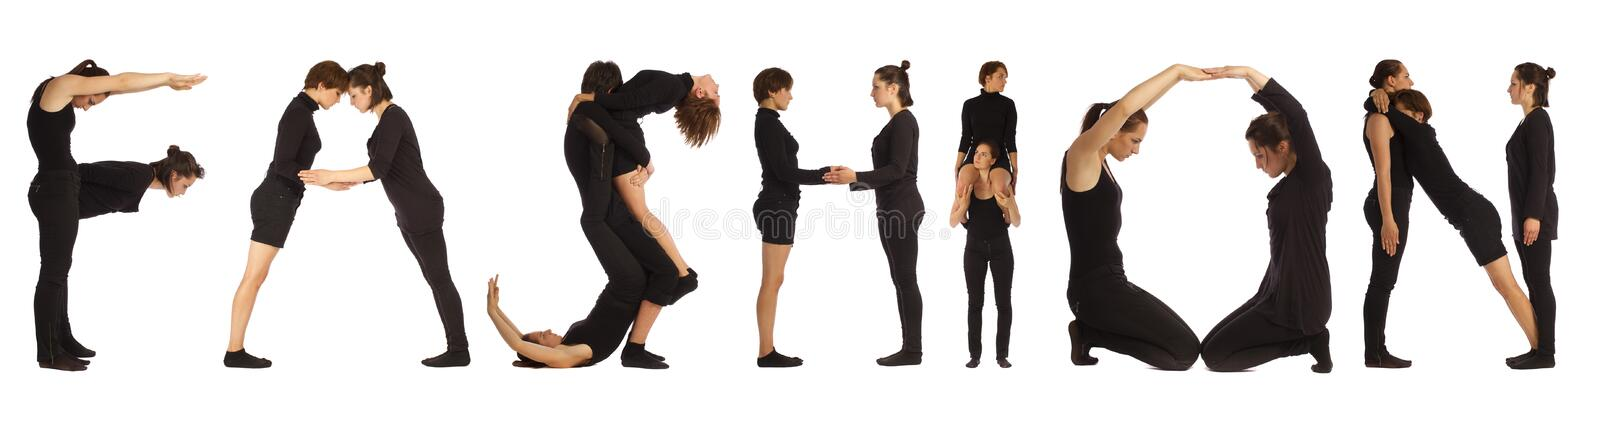 Black dressed people forming word FASHION royalty free stock photography